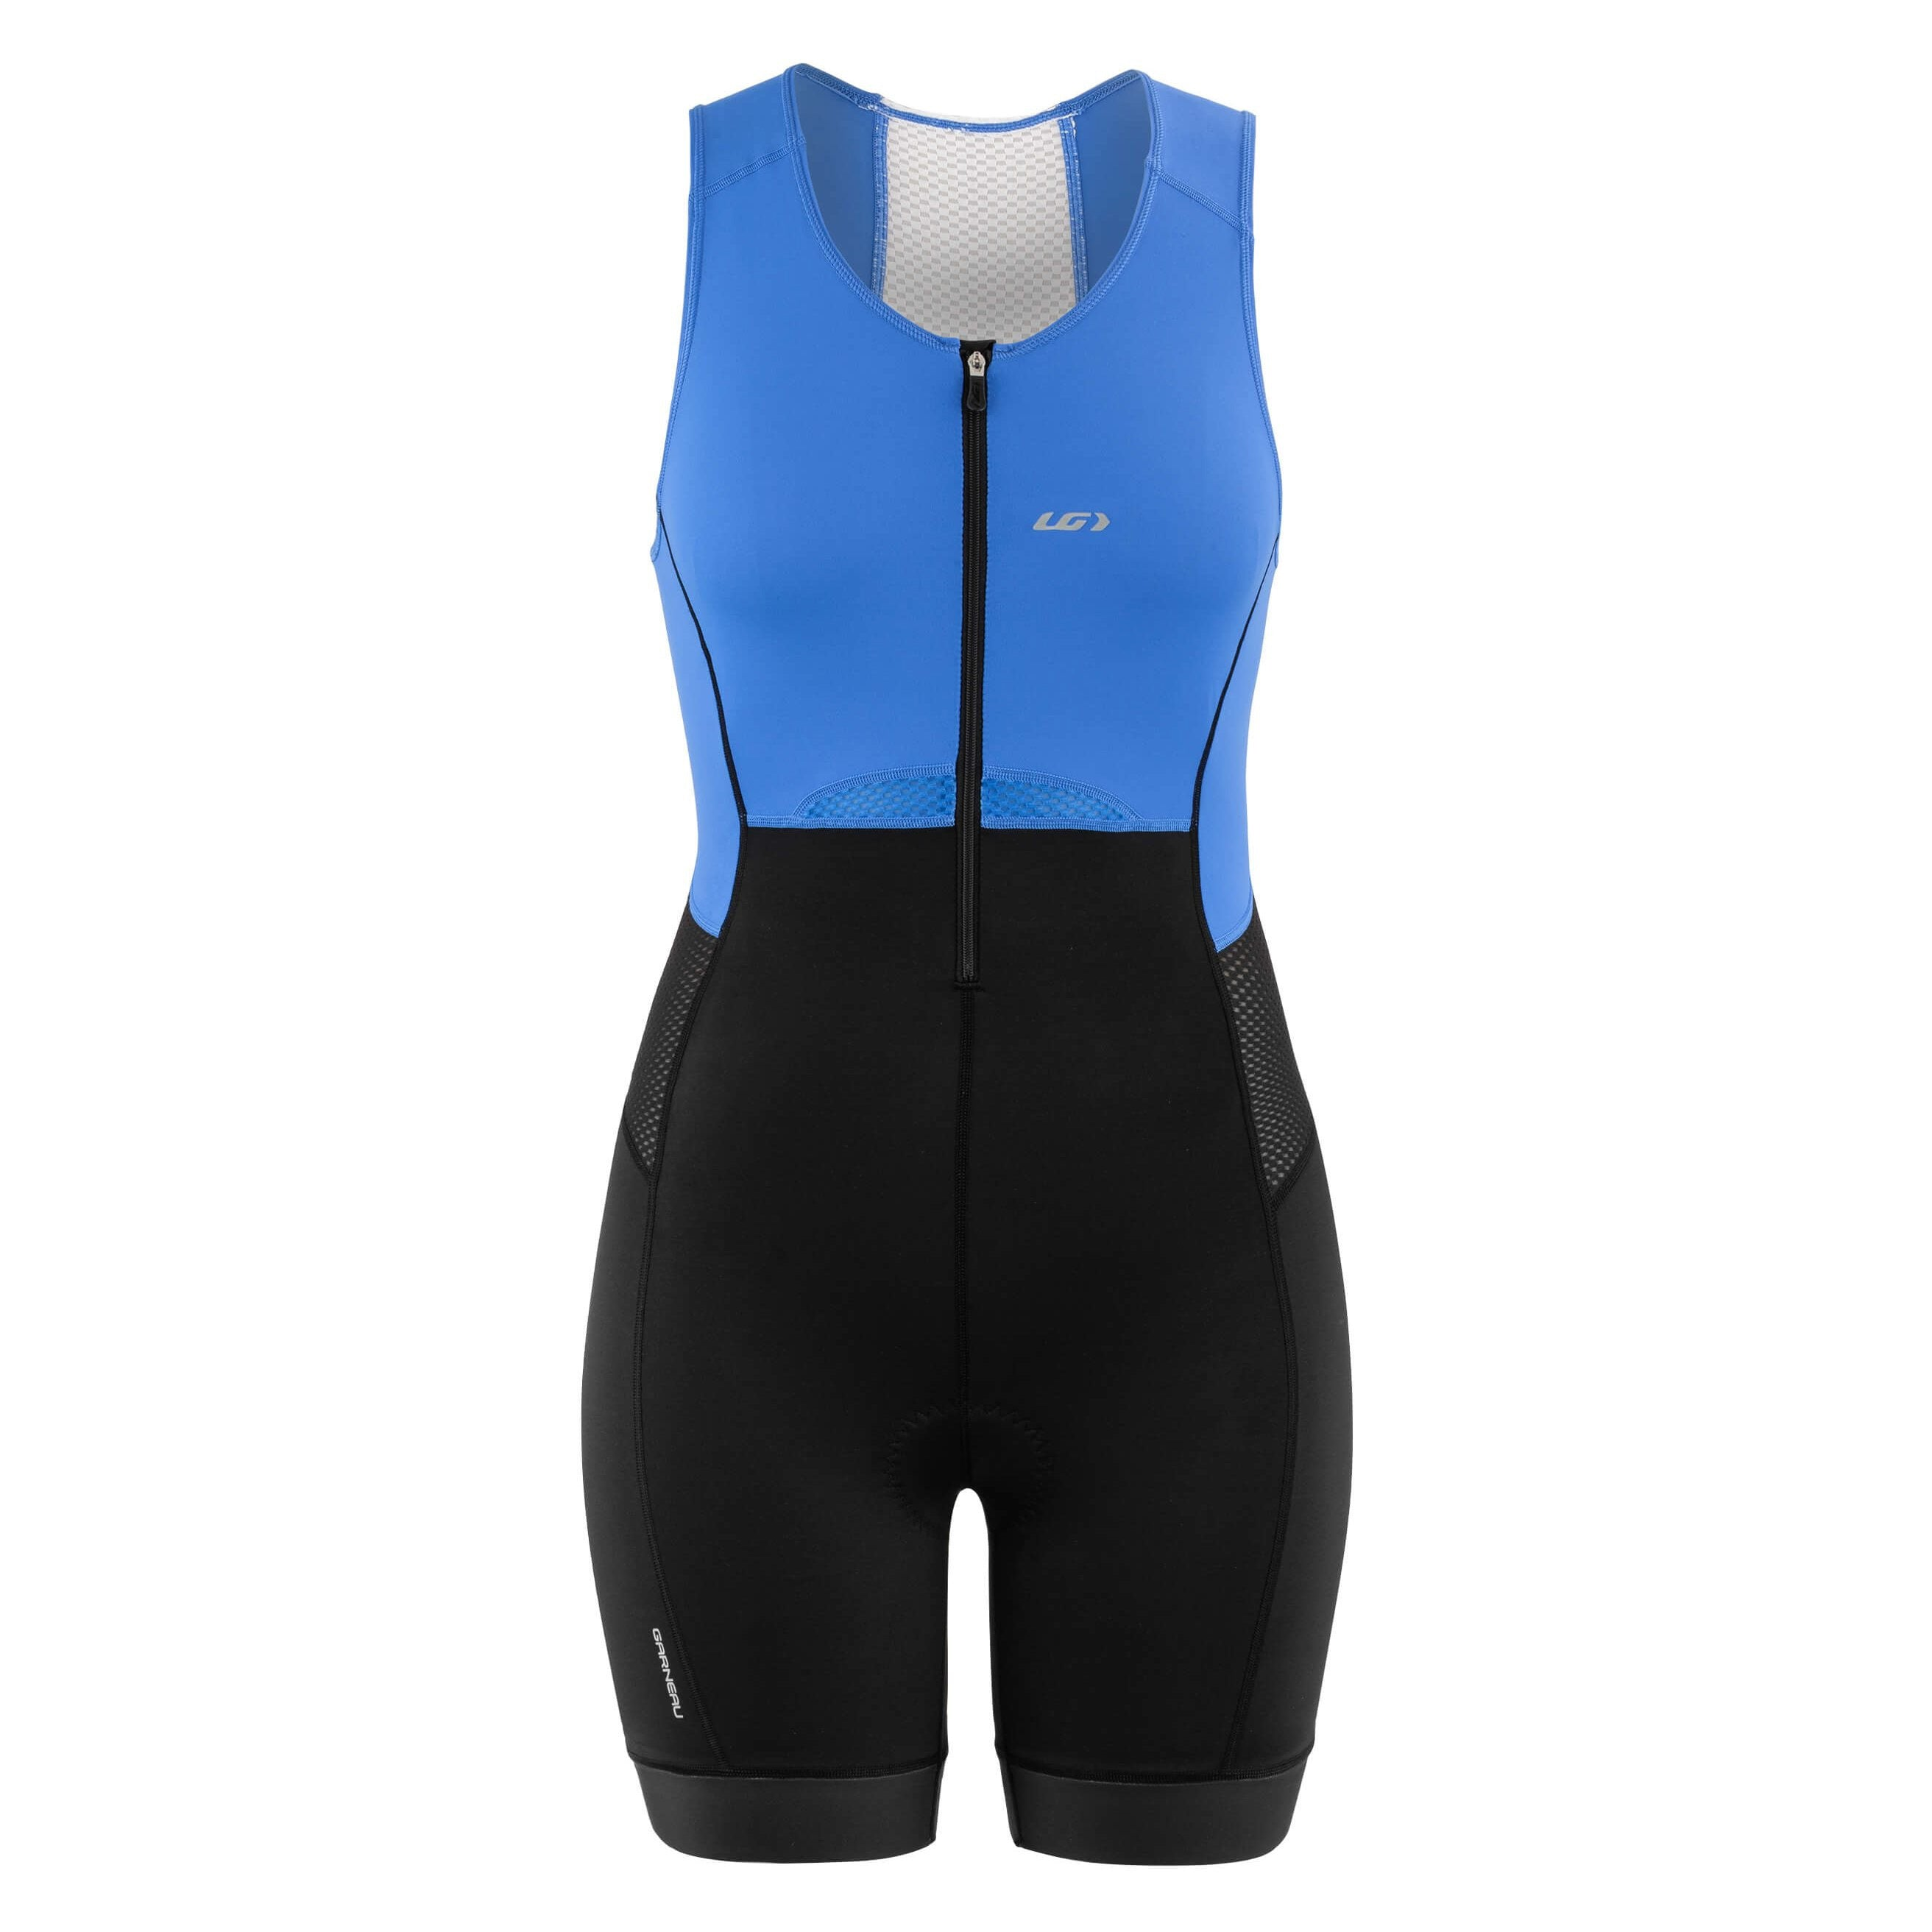 Louis Garneau Women's Sprint Tri Suit